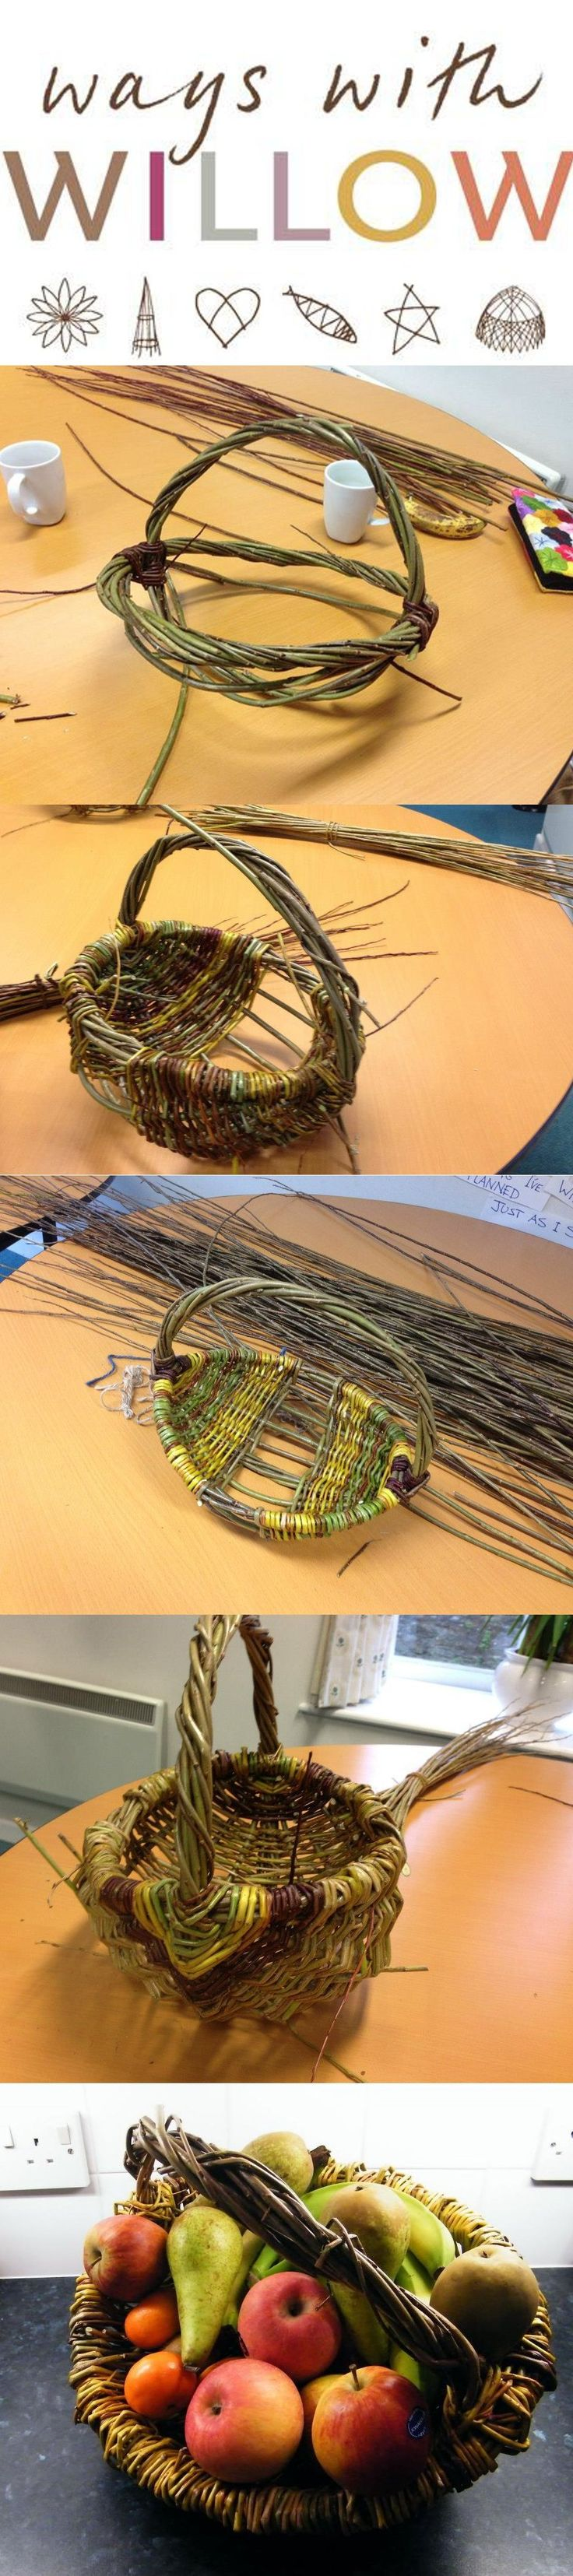 A wonderful fruit basket made by an individual on a Ways with Willow Basketry Course in Cornwall. See our courses at www.wayswithwillow.co.uk